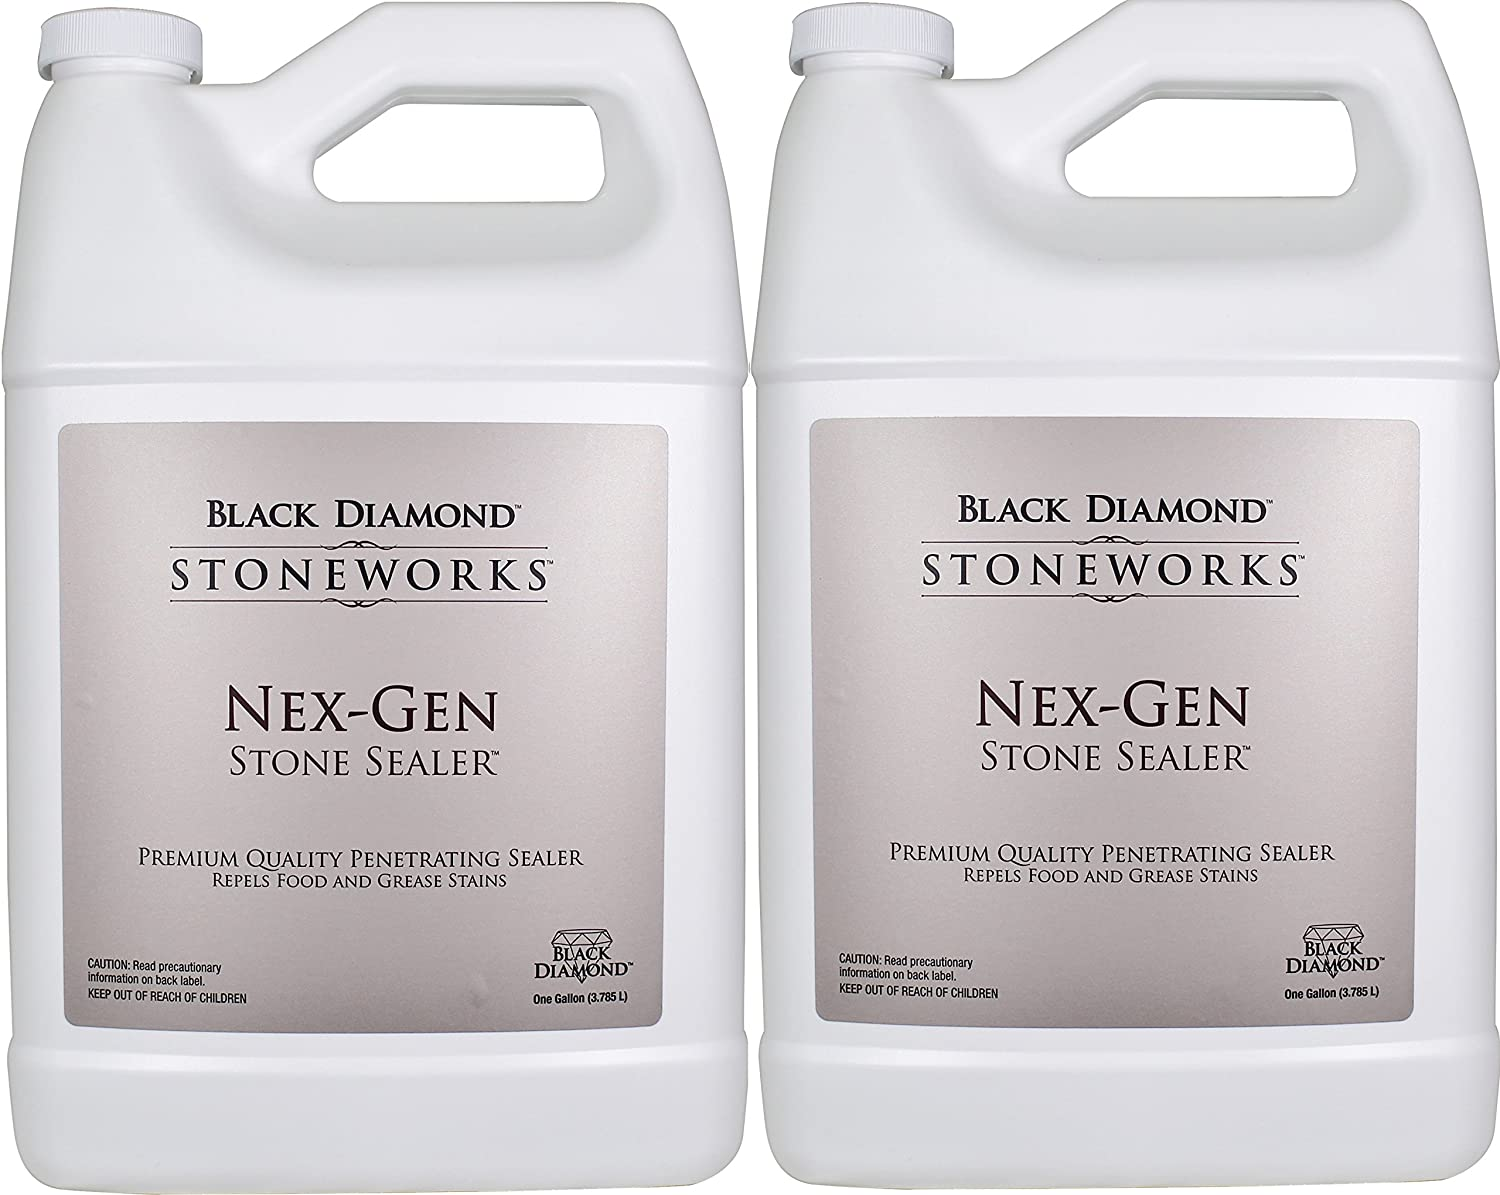 Amazon.com: Black Diamond Nex Gen Natural Stone Penetrating Sealer: Seals U0026  Protects; Granite, Marble, Travertine, Limestone, Concrete, Grout, Tile,  Brick, ...